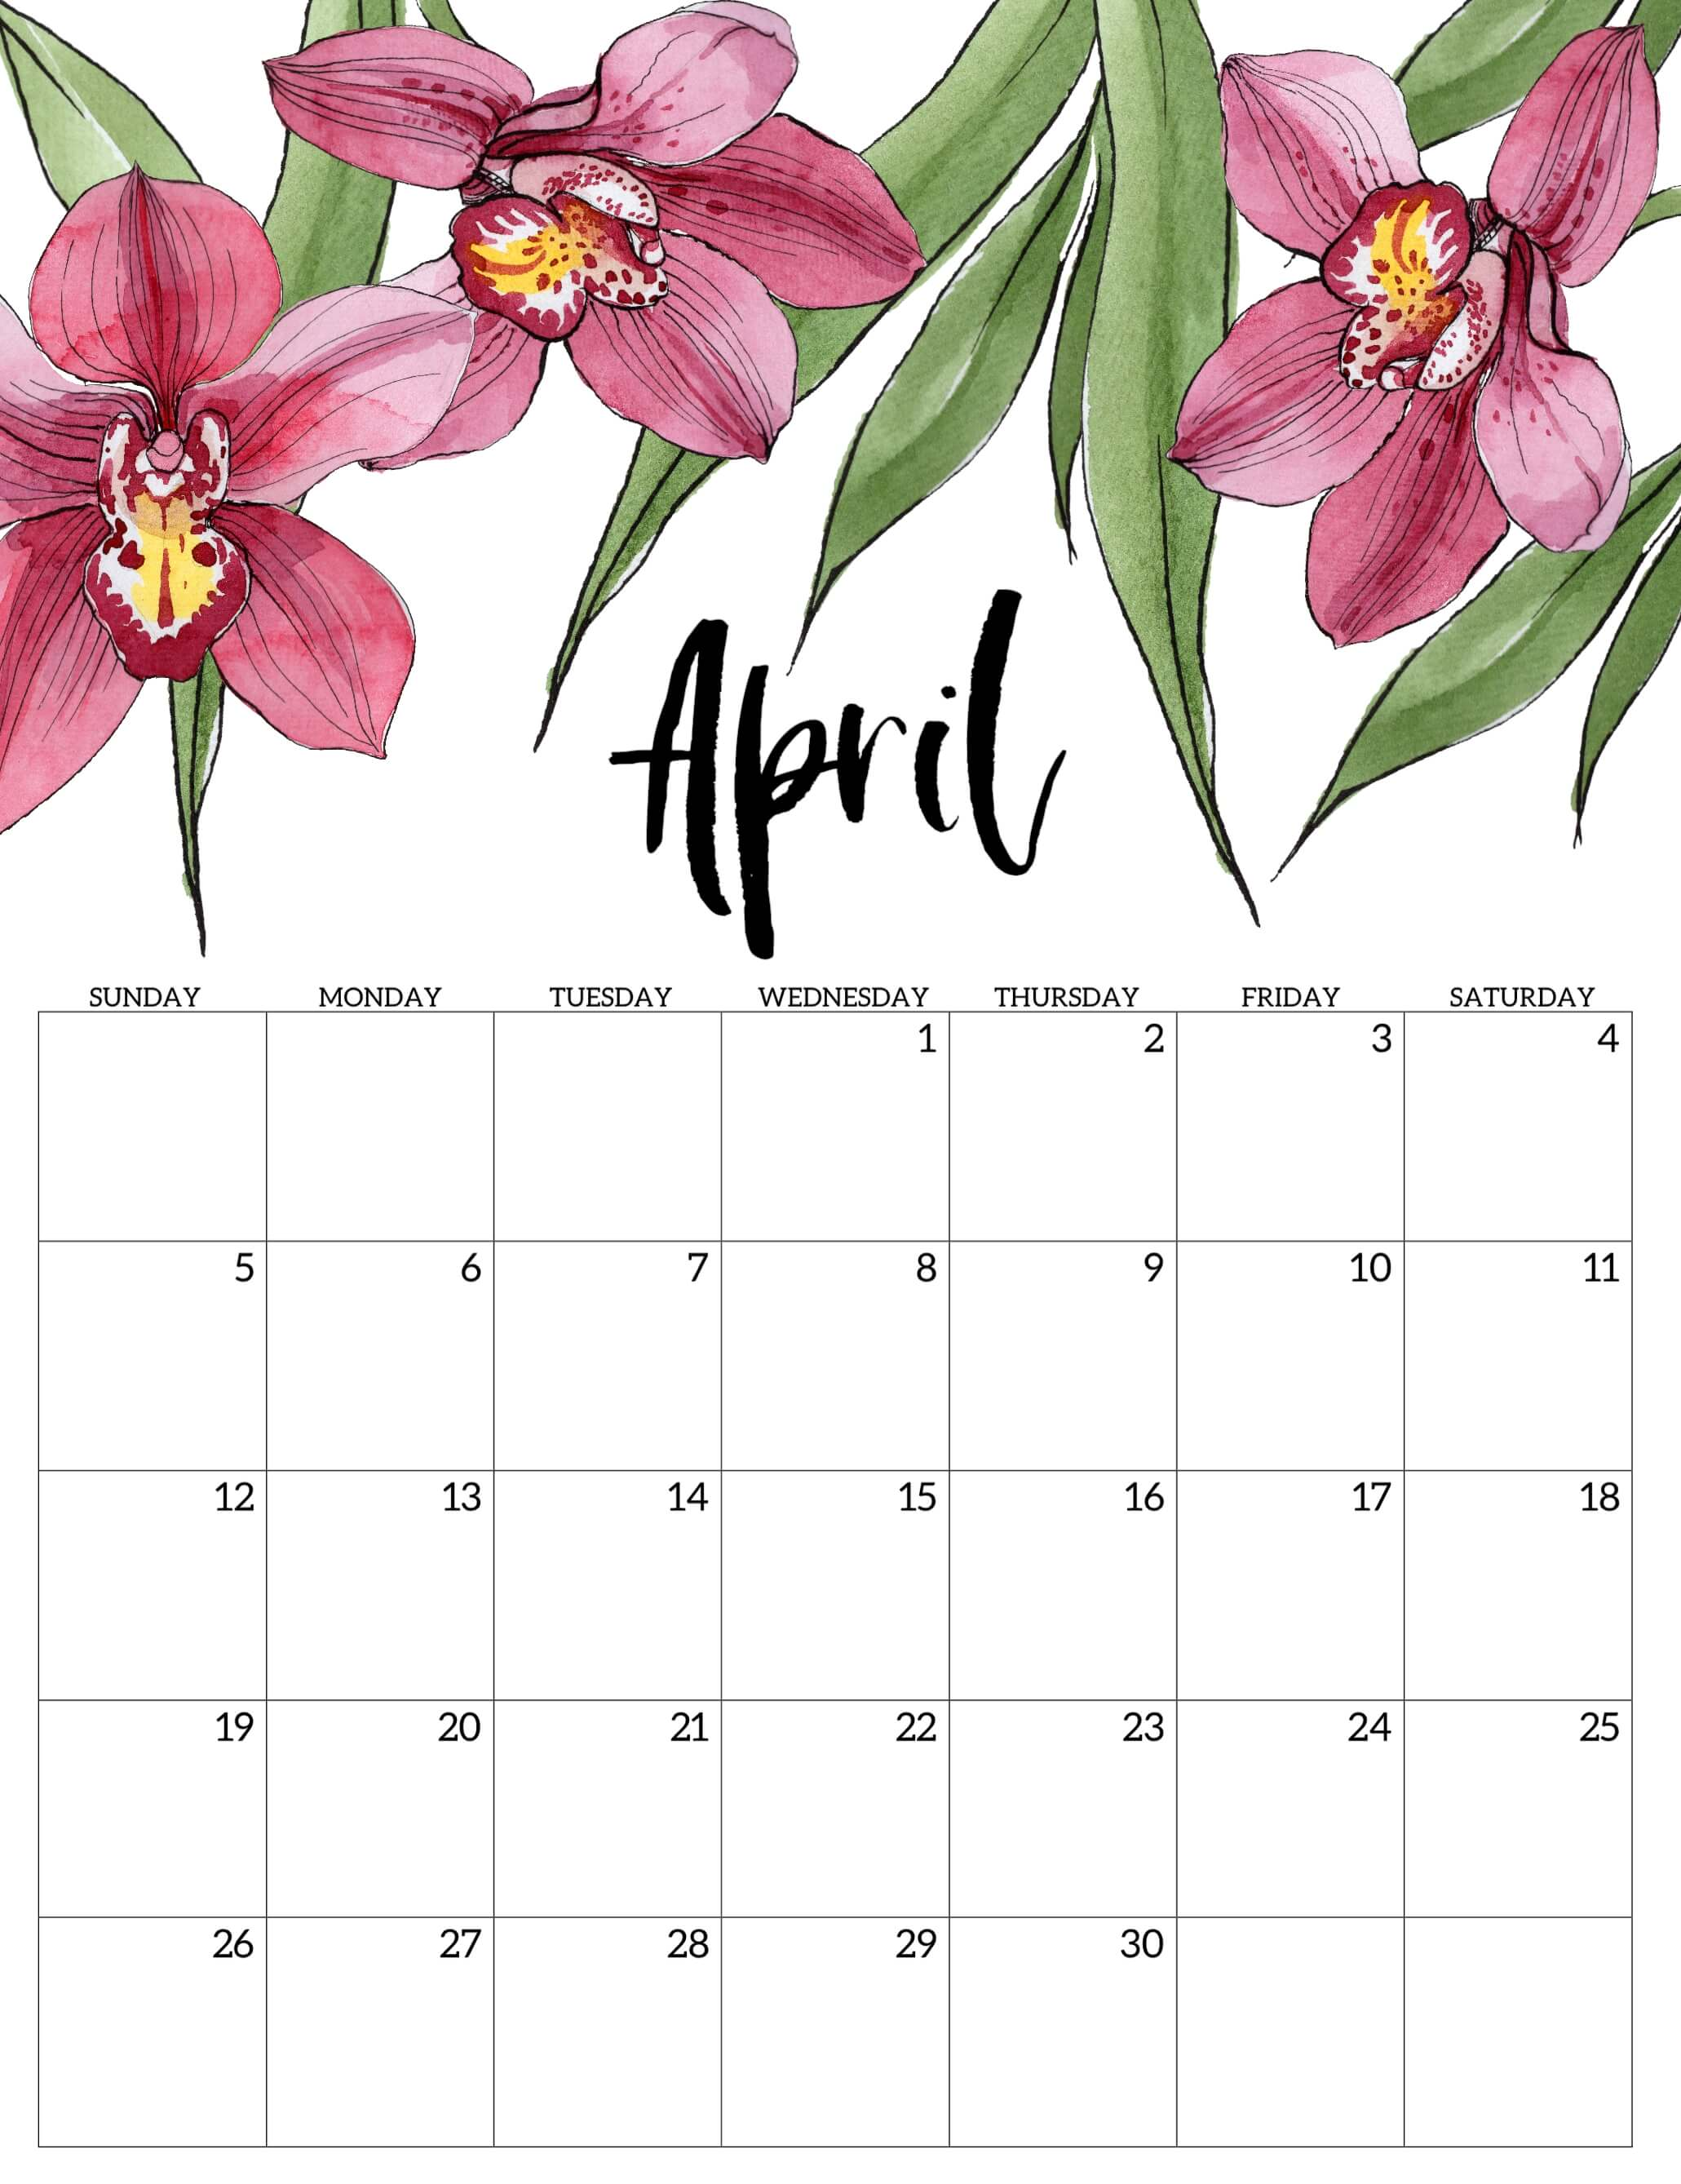 April 2020 Iphone Wallpapers Wallpaper Cave